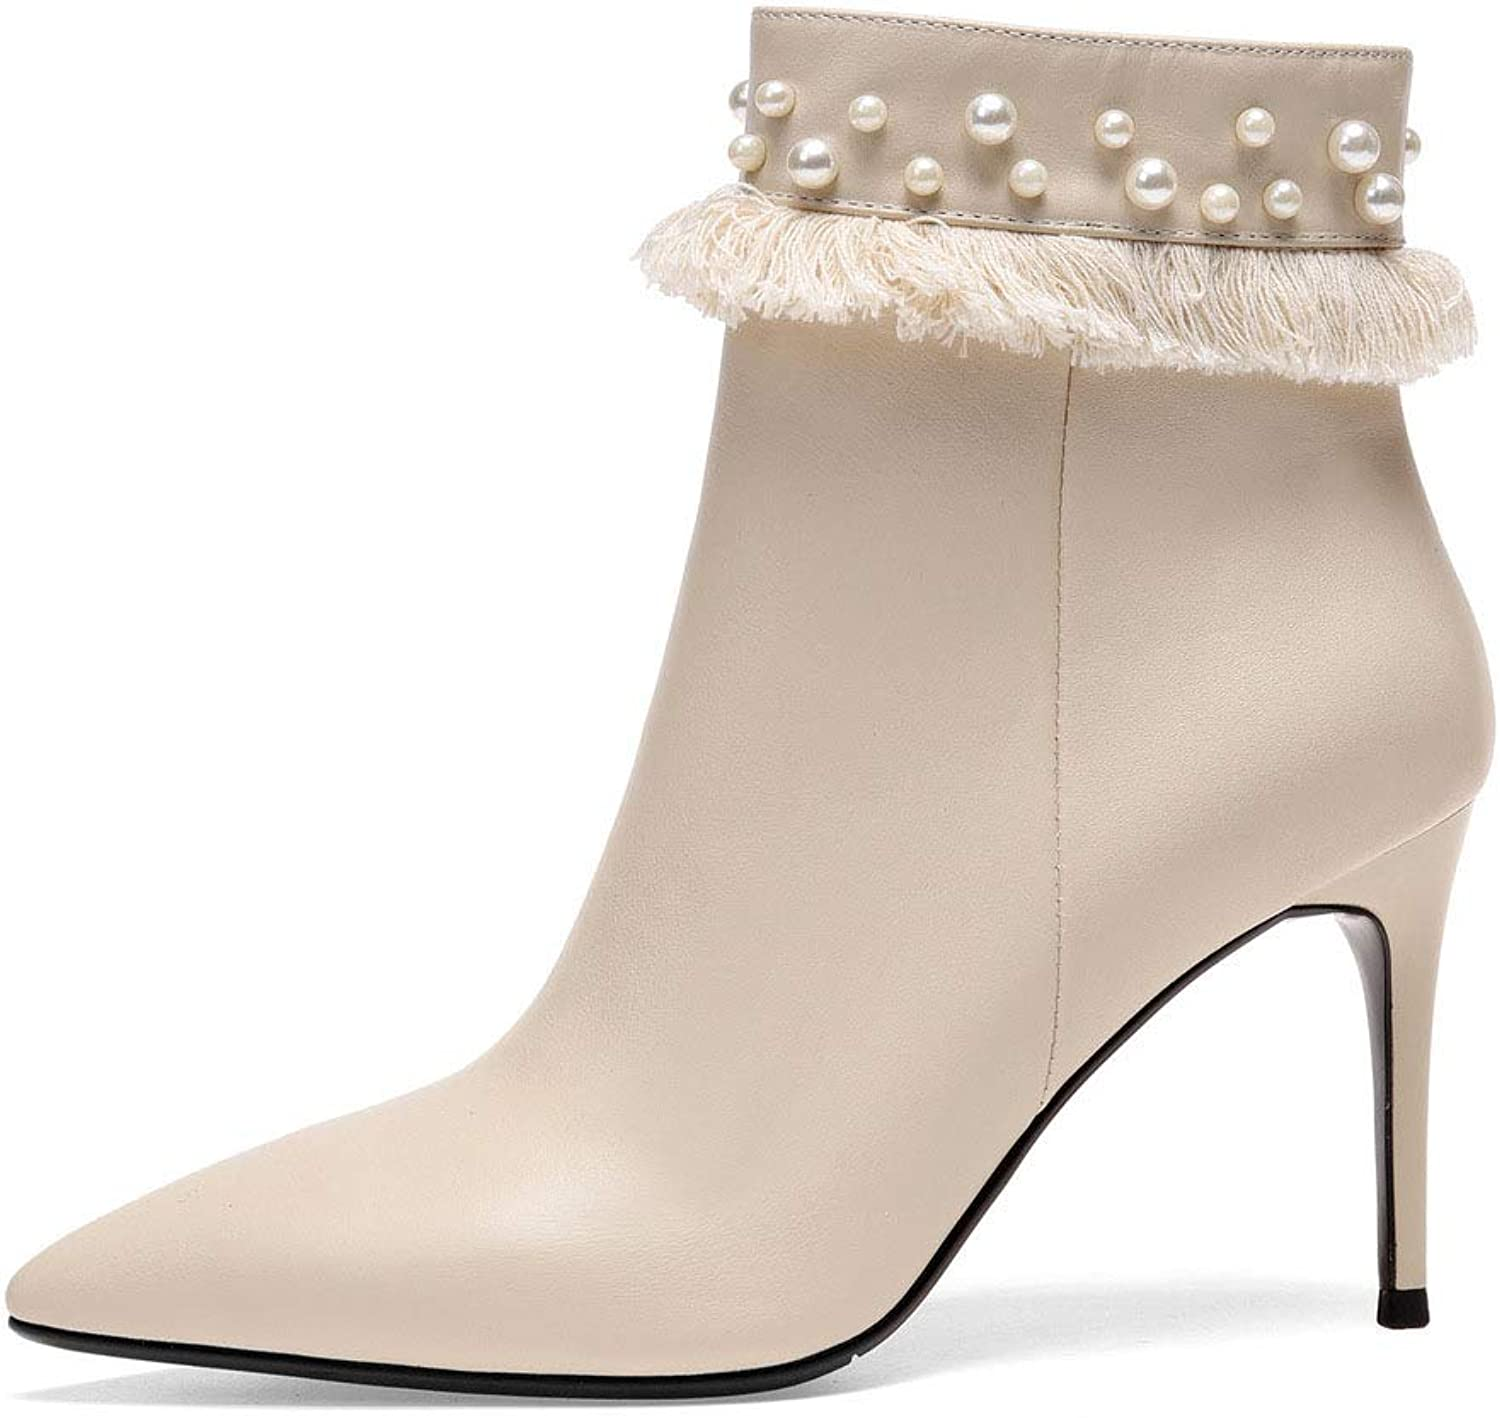 Women's Stiletto shoes, Leather Pointed Toe Ankle Boots Mid Stiletto Heel Pull On Booties Wedding Party & Evening Formal shoes (color   Beige, Size   38)